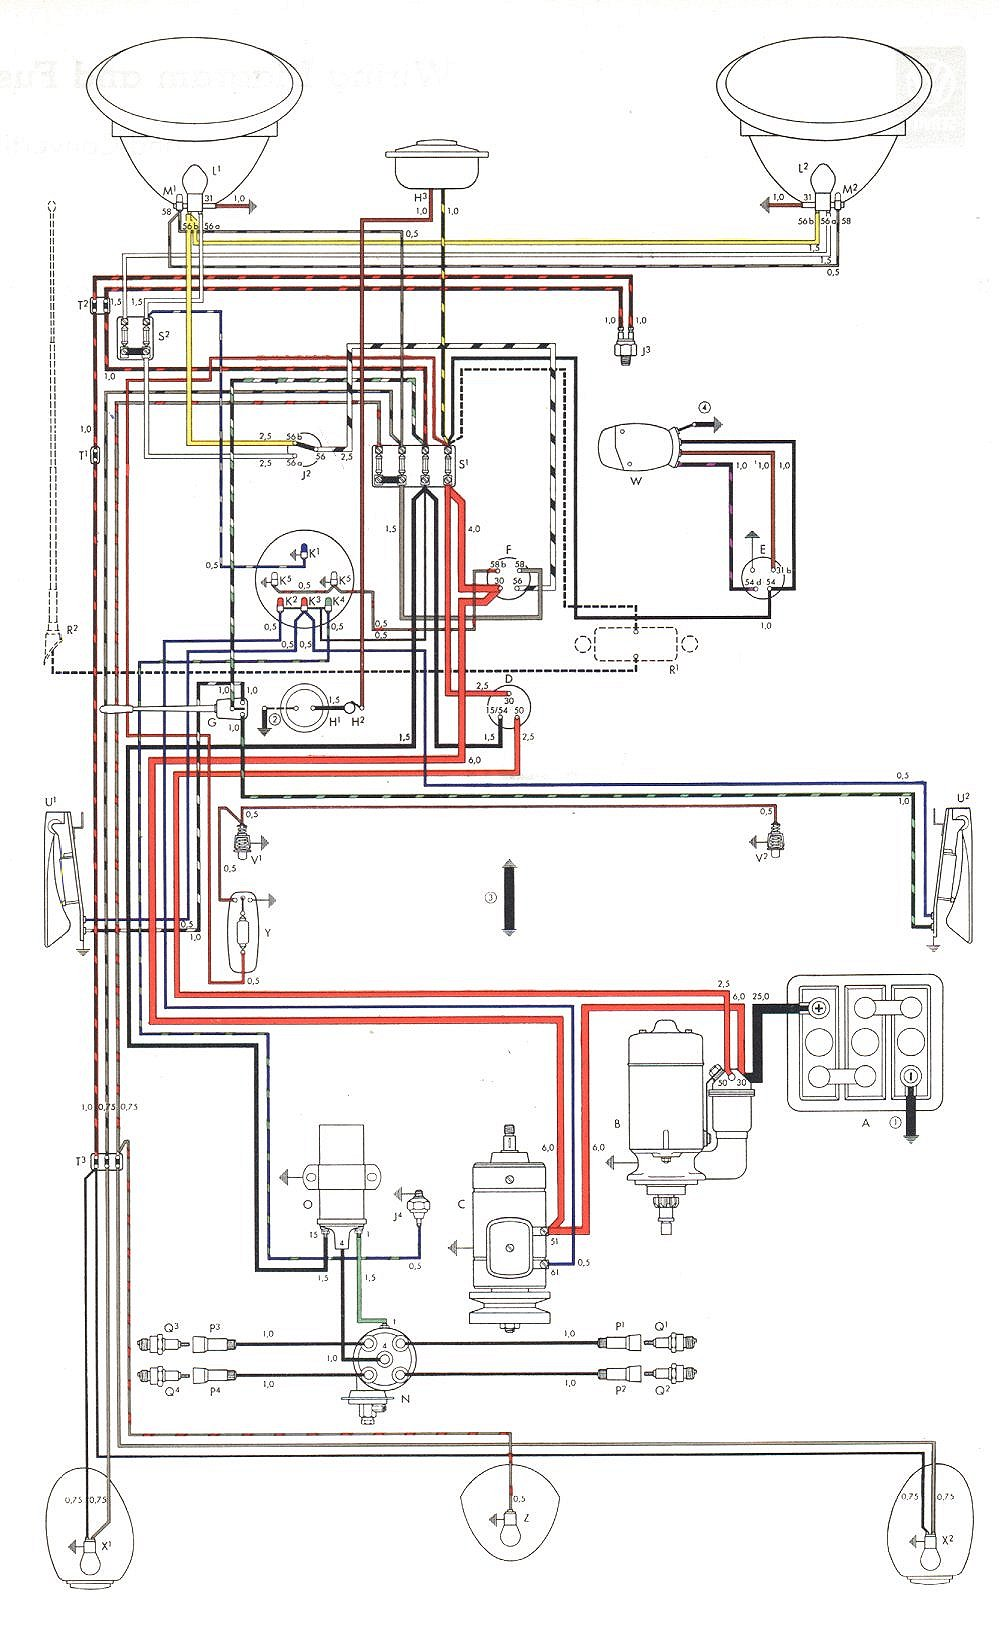 Vw Buggy Wiring Harness Diagram Just Another Blog Dune Basic Simple Diagrams Rh 5 7 Zahnaerztin Carstens De